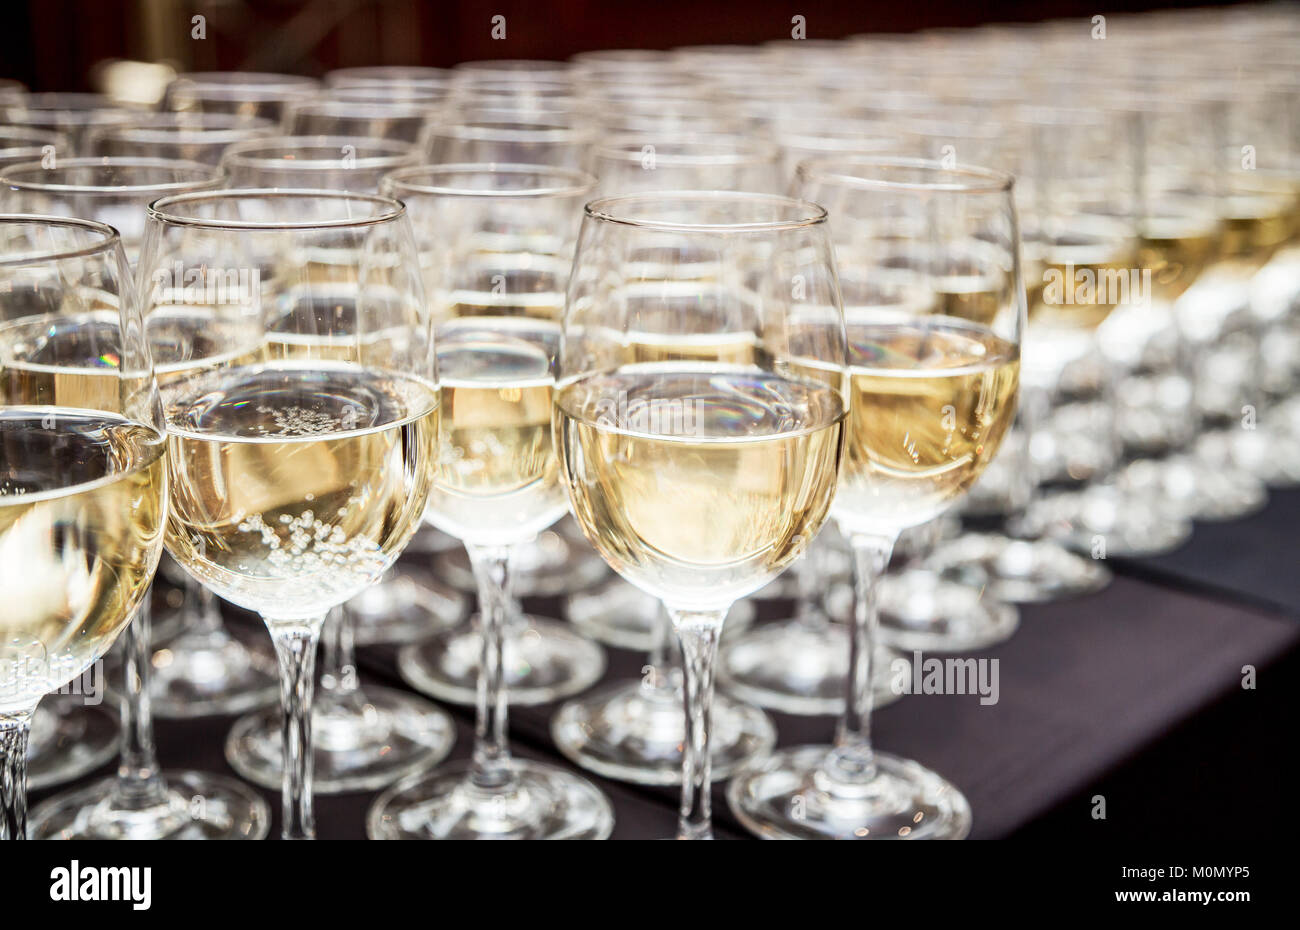 Glasses of sparkling wine. Cocktail party. - Stock Image